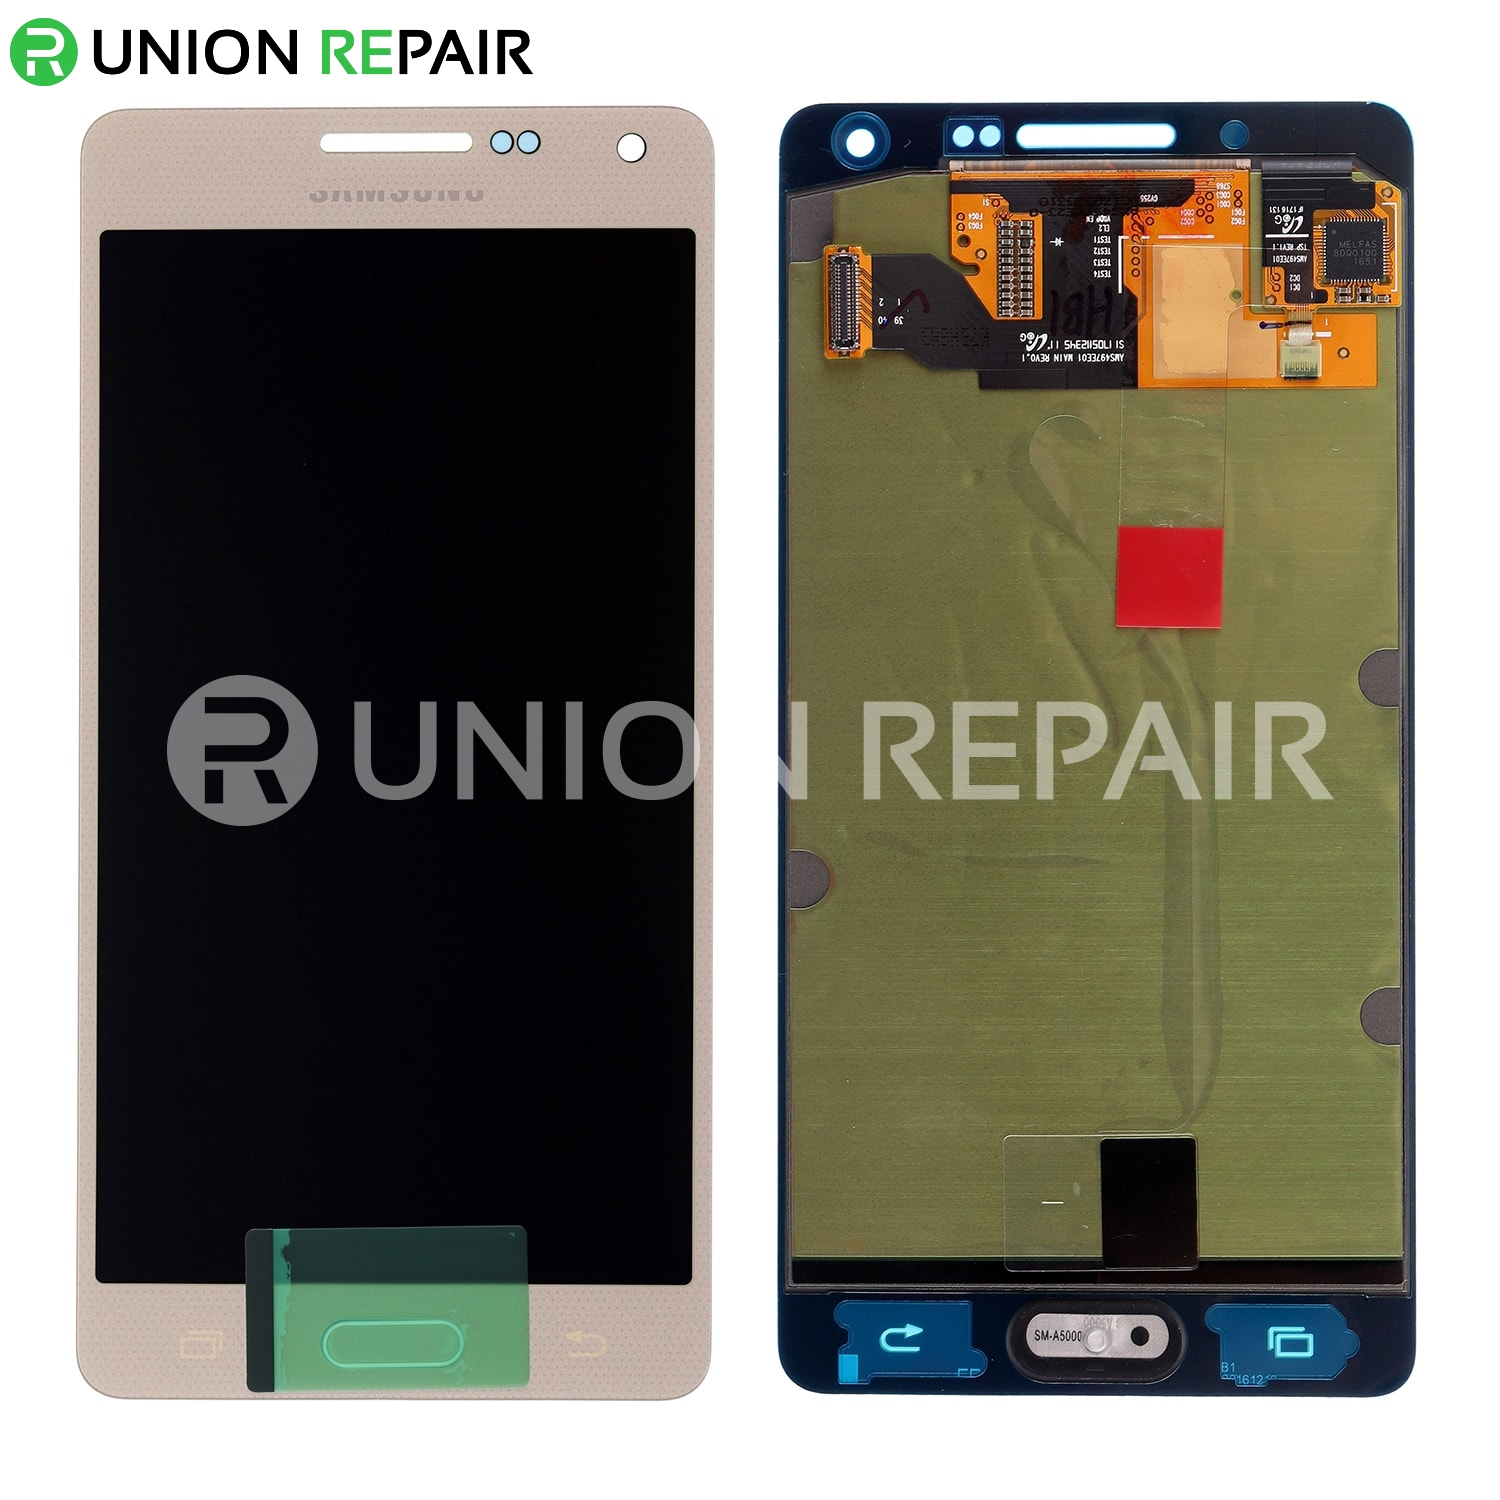 9de18b30ea88be 17116-replacement -for-samsung-galaxy-a5-2015-sm-a500-lcd-screen-with-digitizer-assembly-gold-1.jpg?t=1559809359